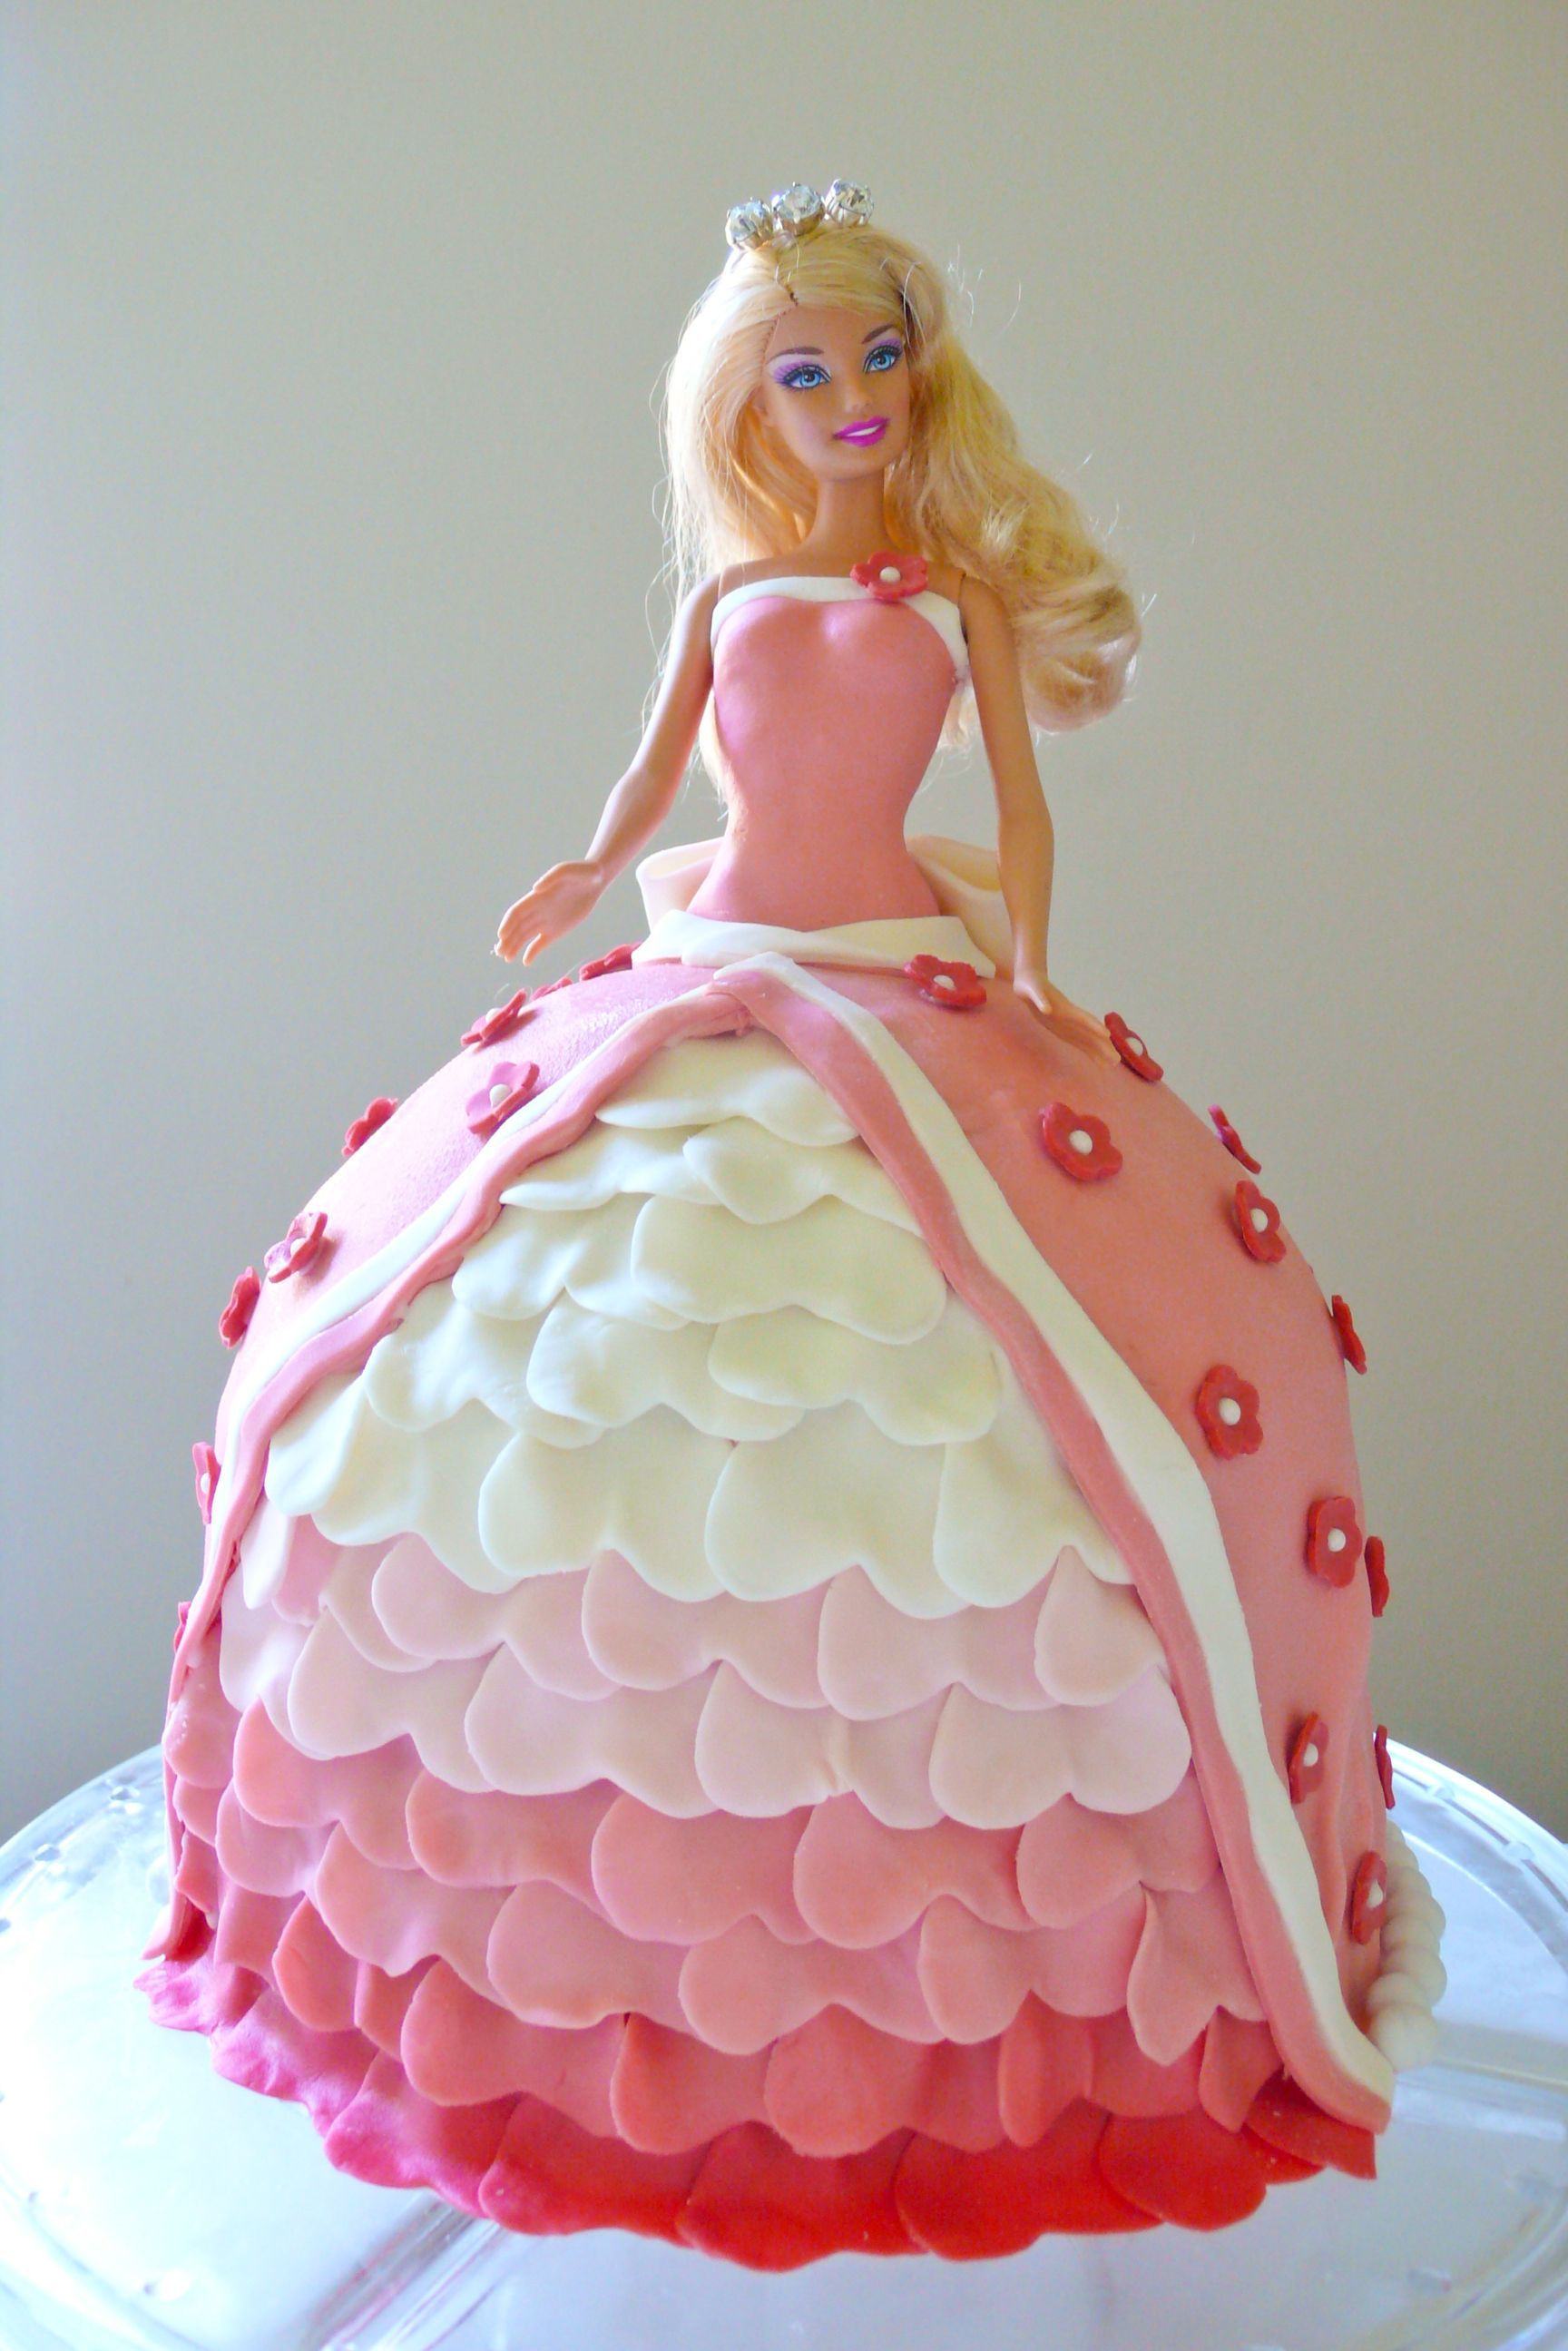 Barbie Doll Cake Decorating Ideas : Princess Doll Cake Tutorial Decorating Tips And Techniques ...